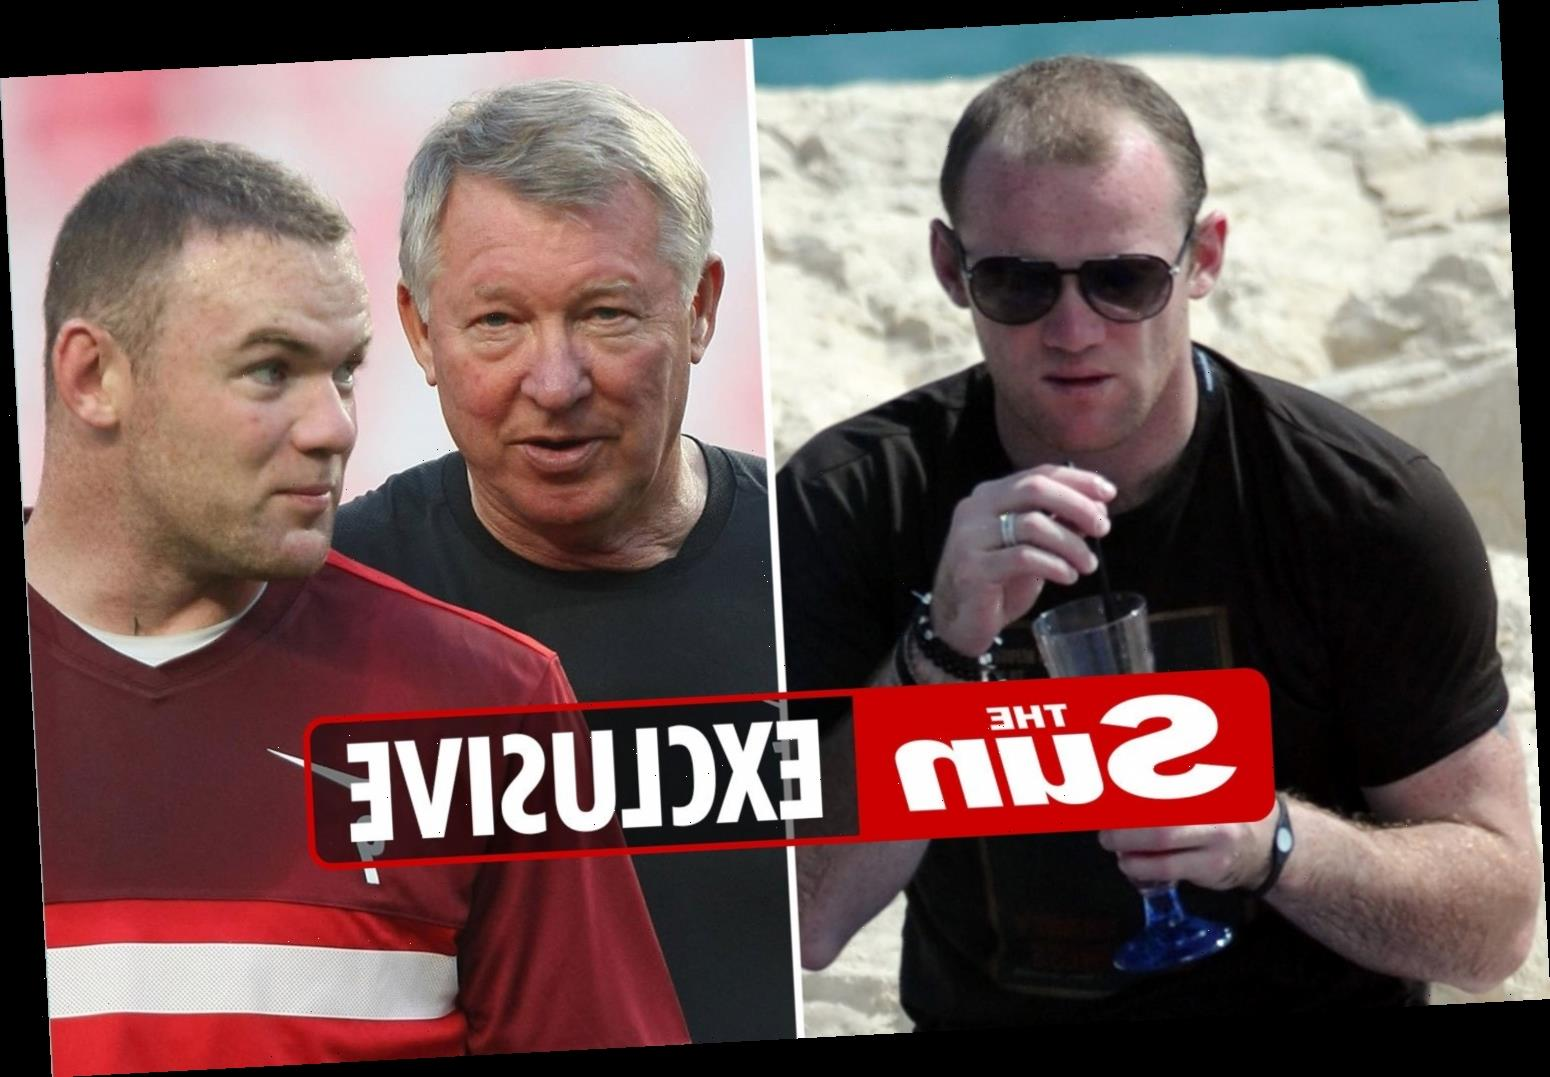 Sir Alex Ferguson claims Wayne Rooney could not handle his booze & he was powerless to stop the player having affairs